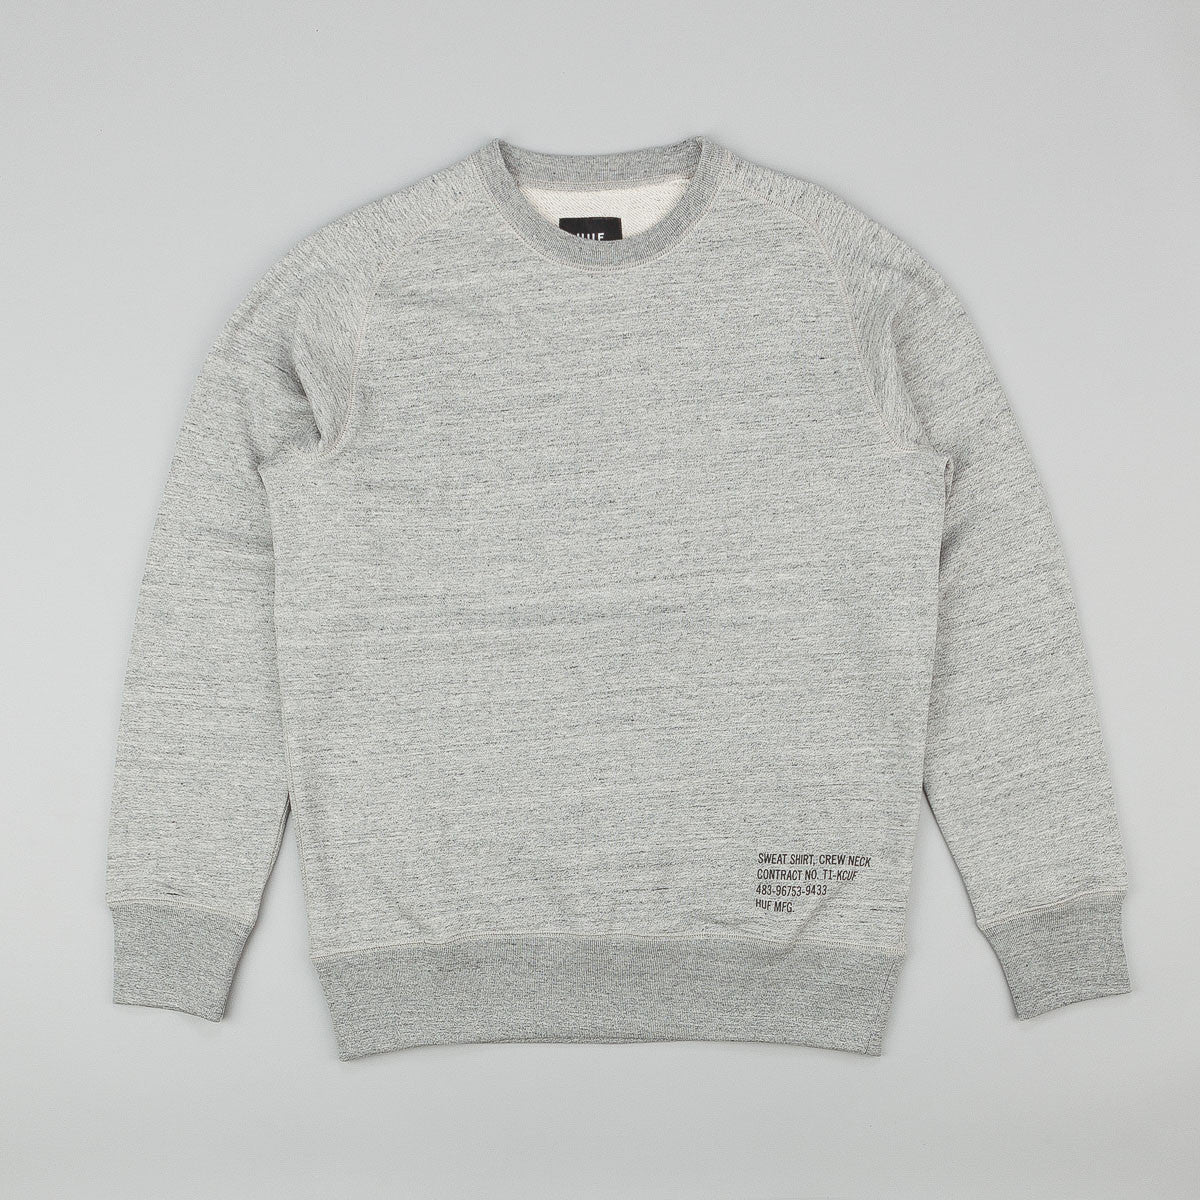 HUF Mil Spec Cadet Crew Neck Sweatshirt - Heather Grey